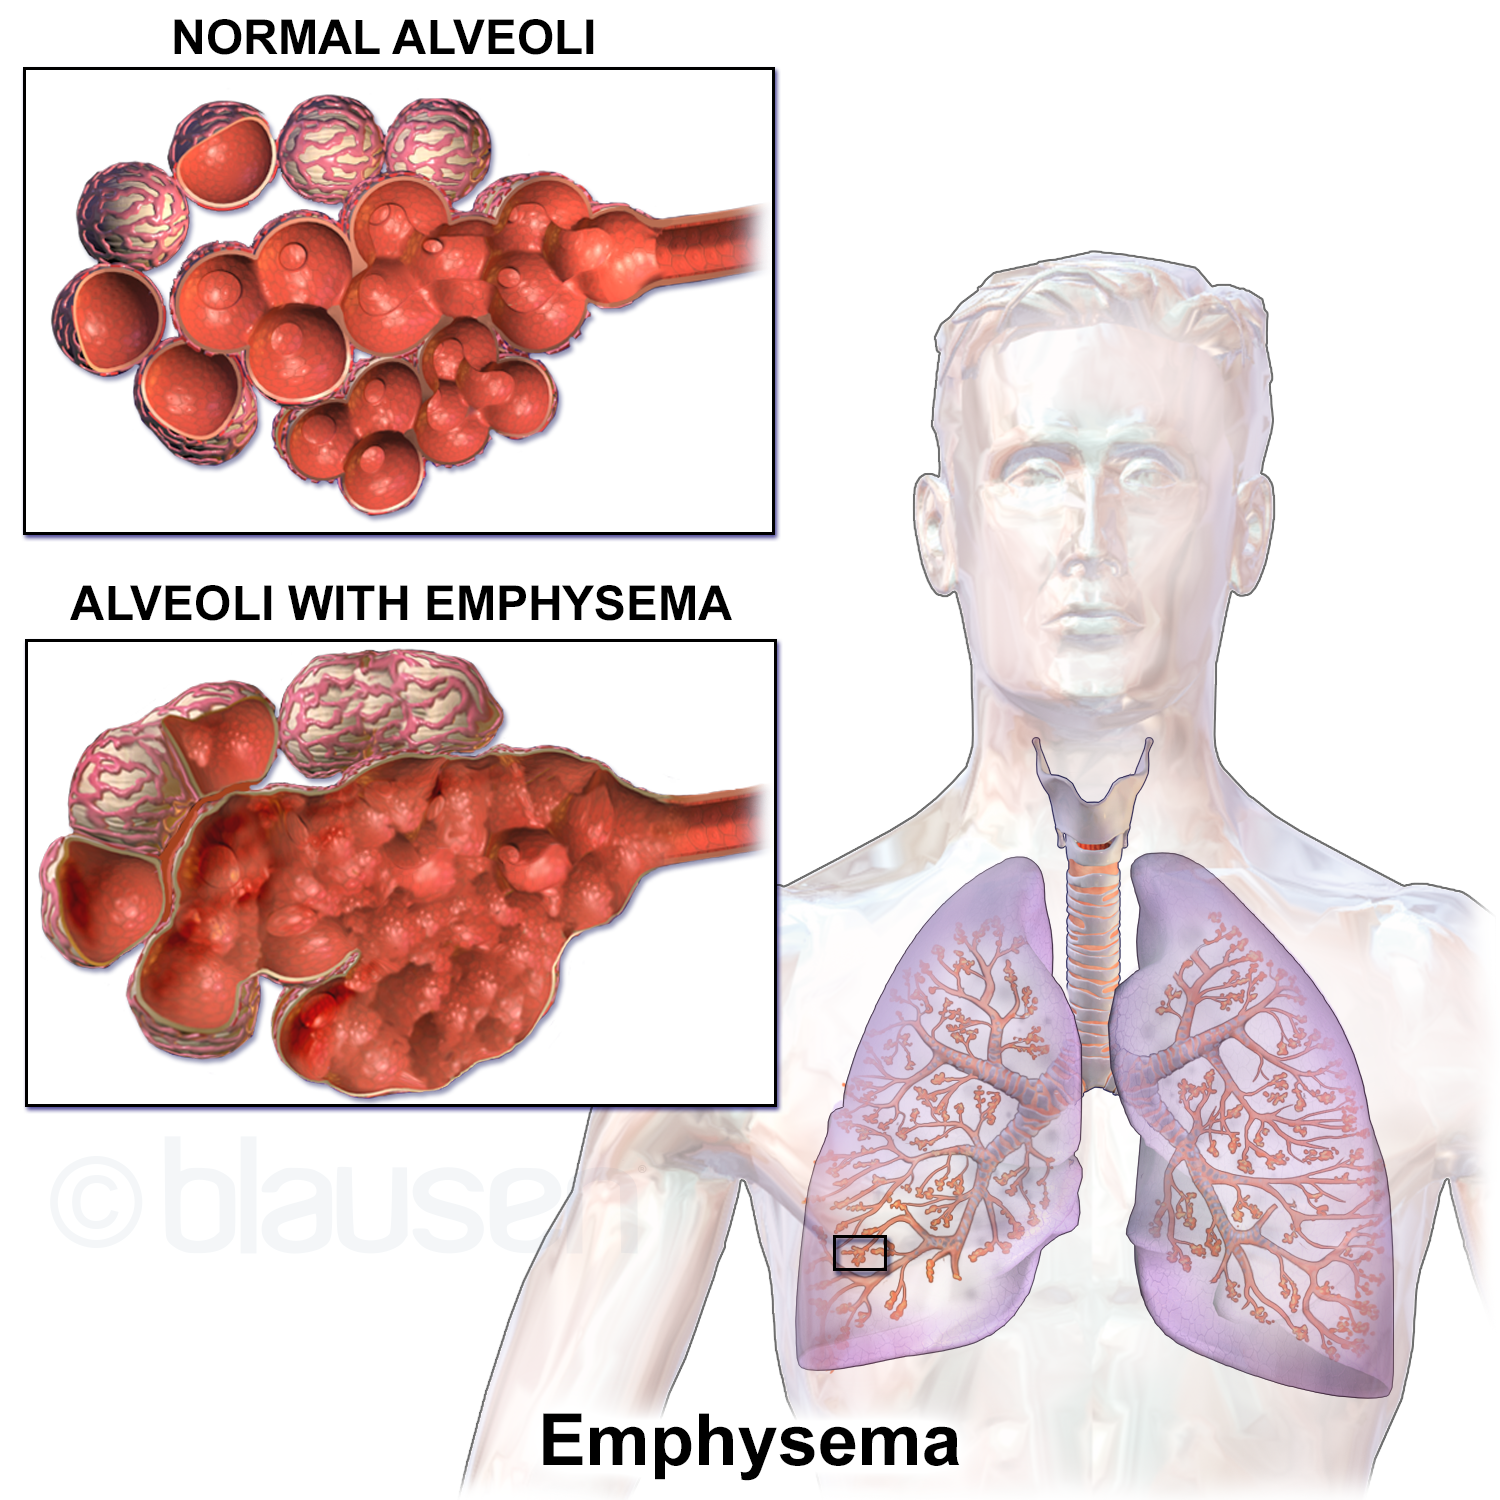 Normal alveoli versus alveoli with emphysema